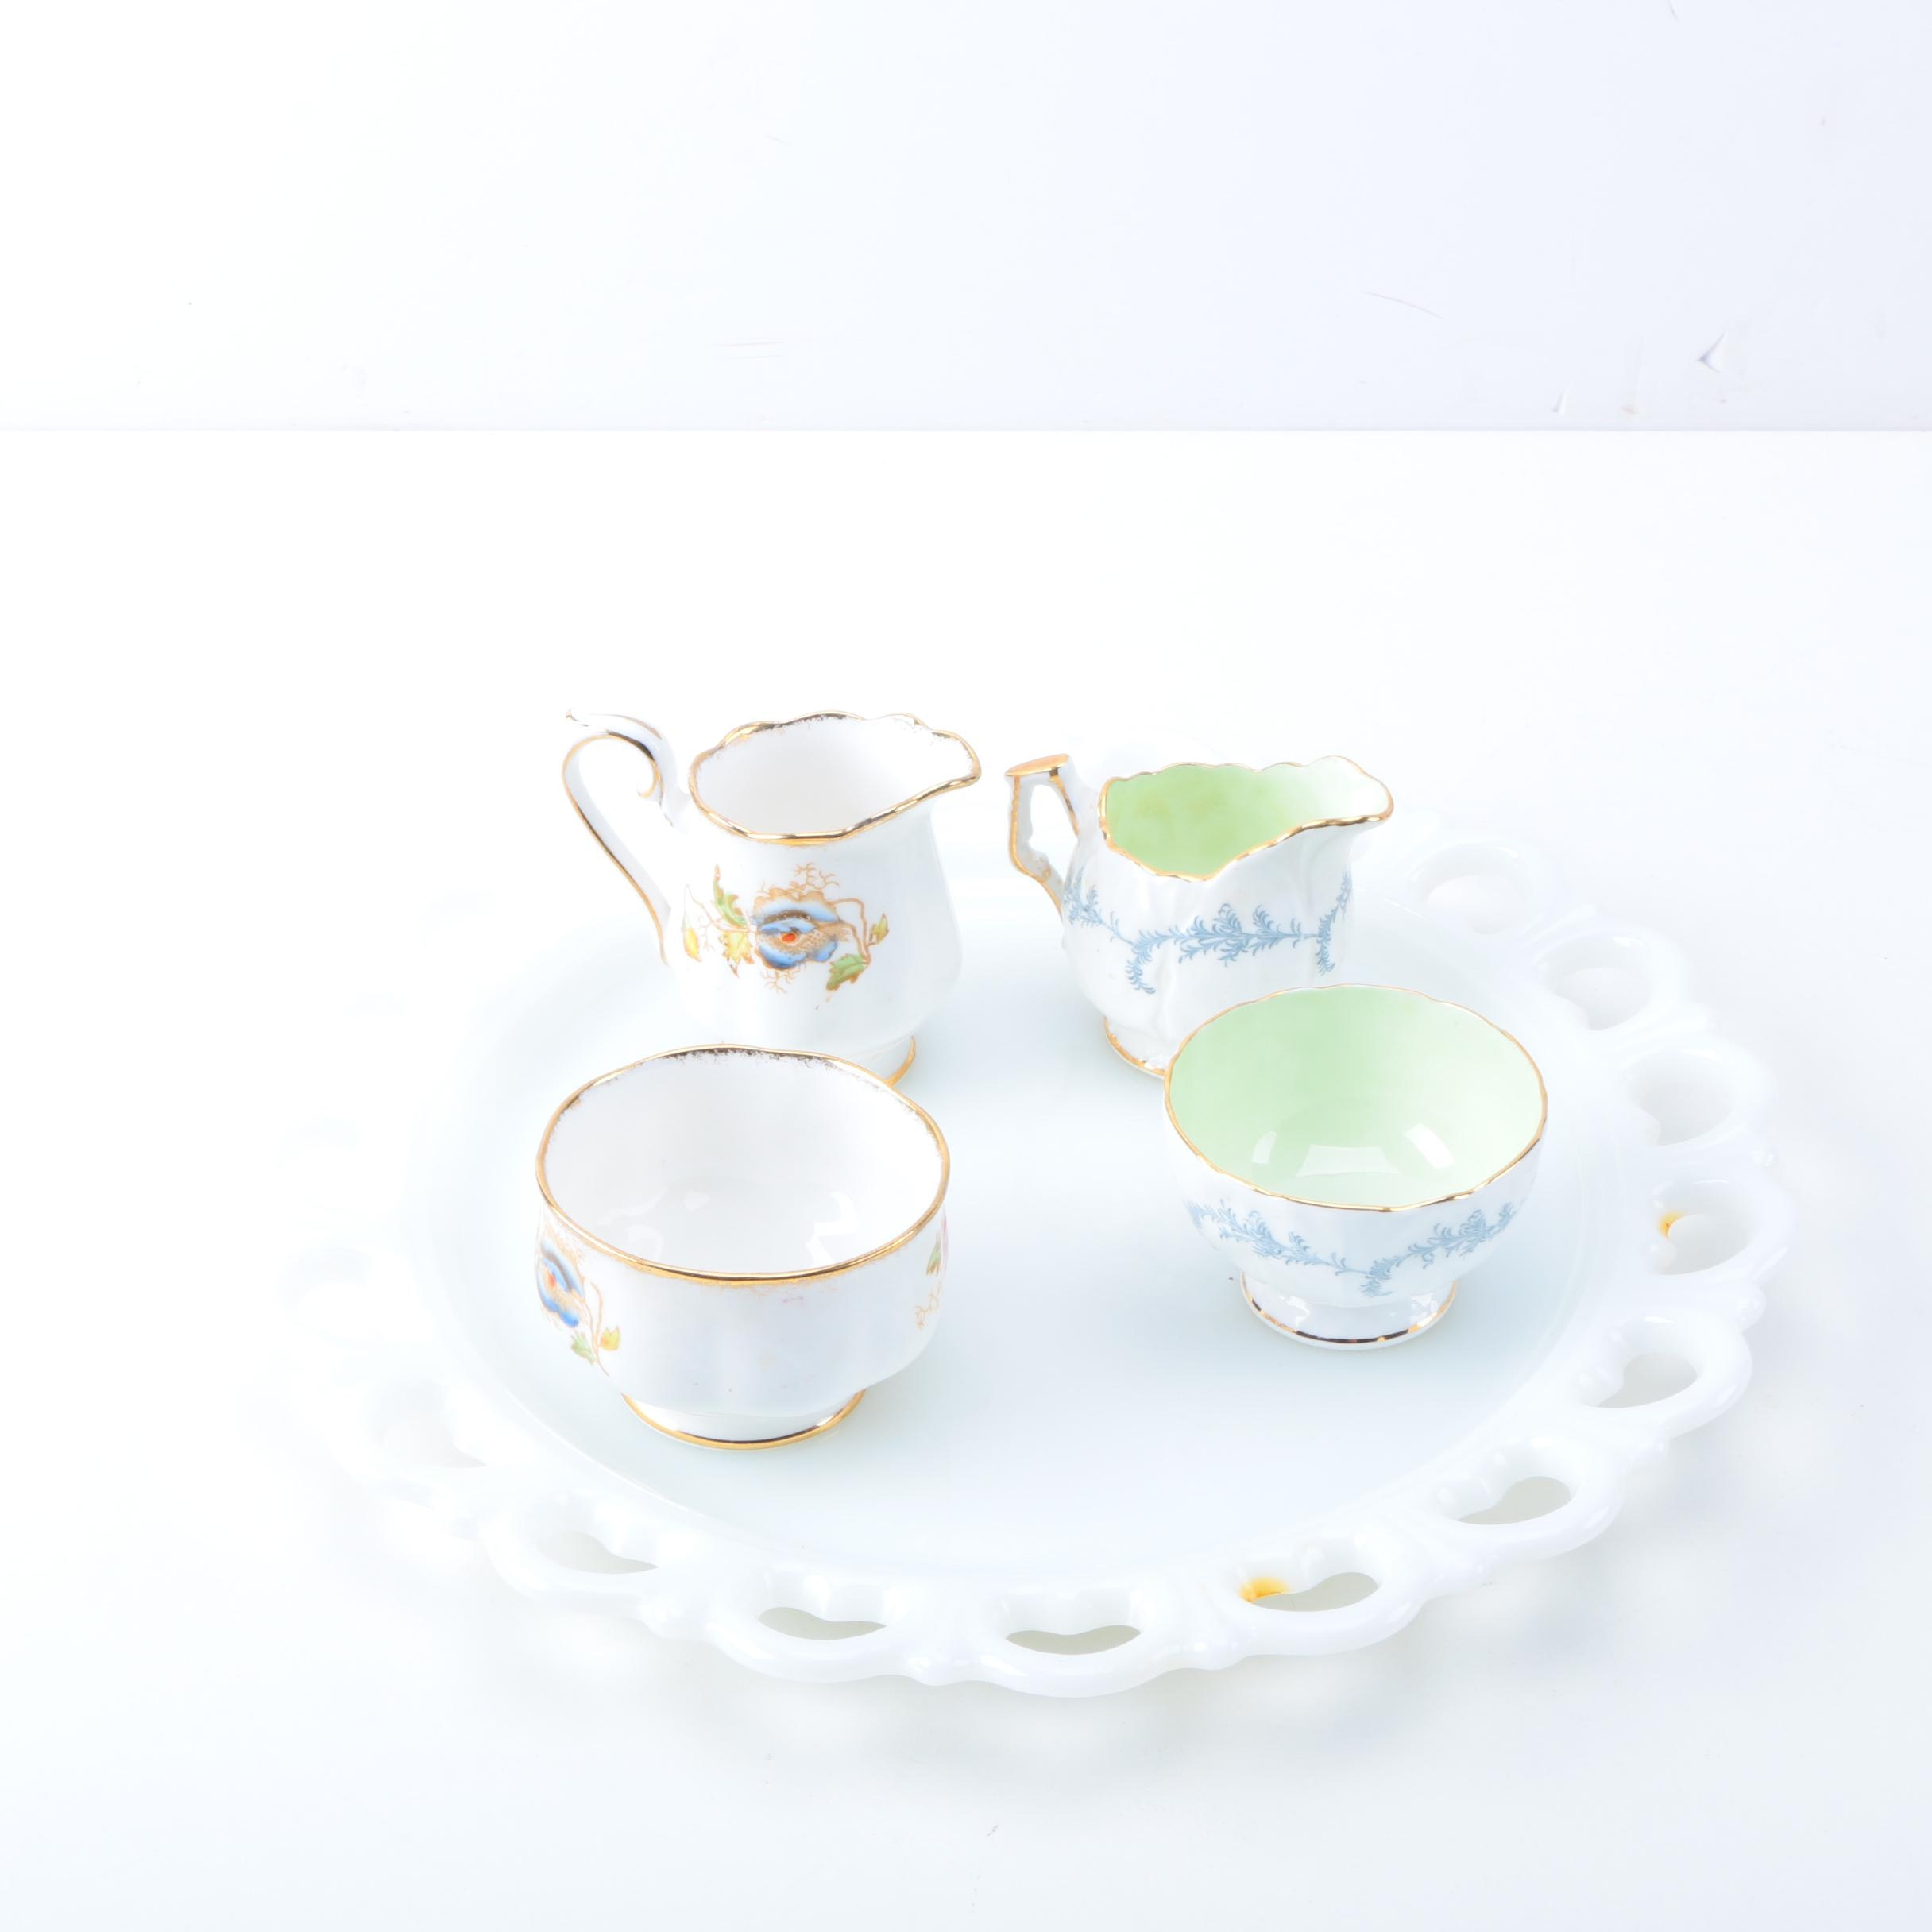 Milk Glass Platter with Porcelain Creamer and Sugar Bowl Sets including Aynsley